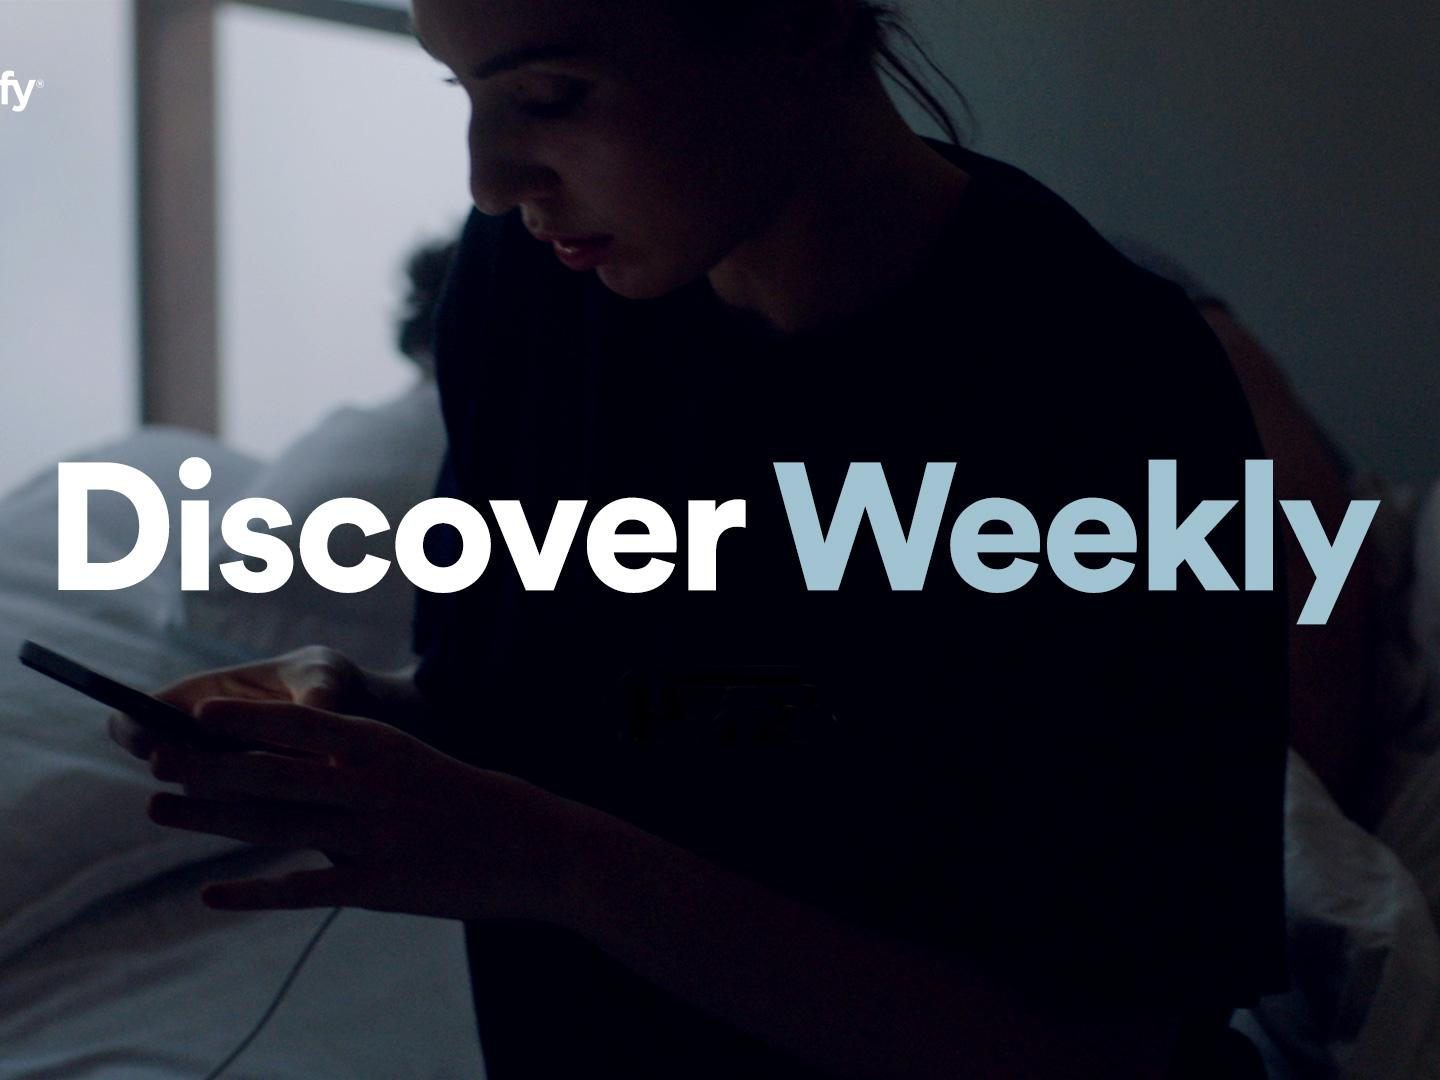 Spotify: Discover Weekly Thumbnail